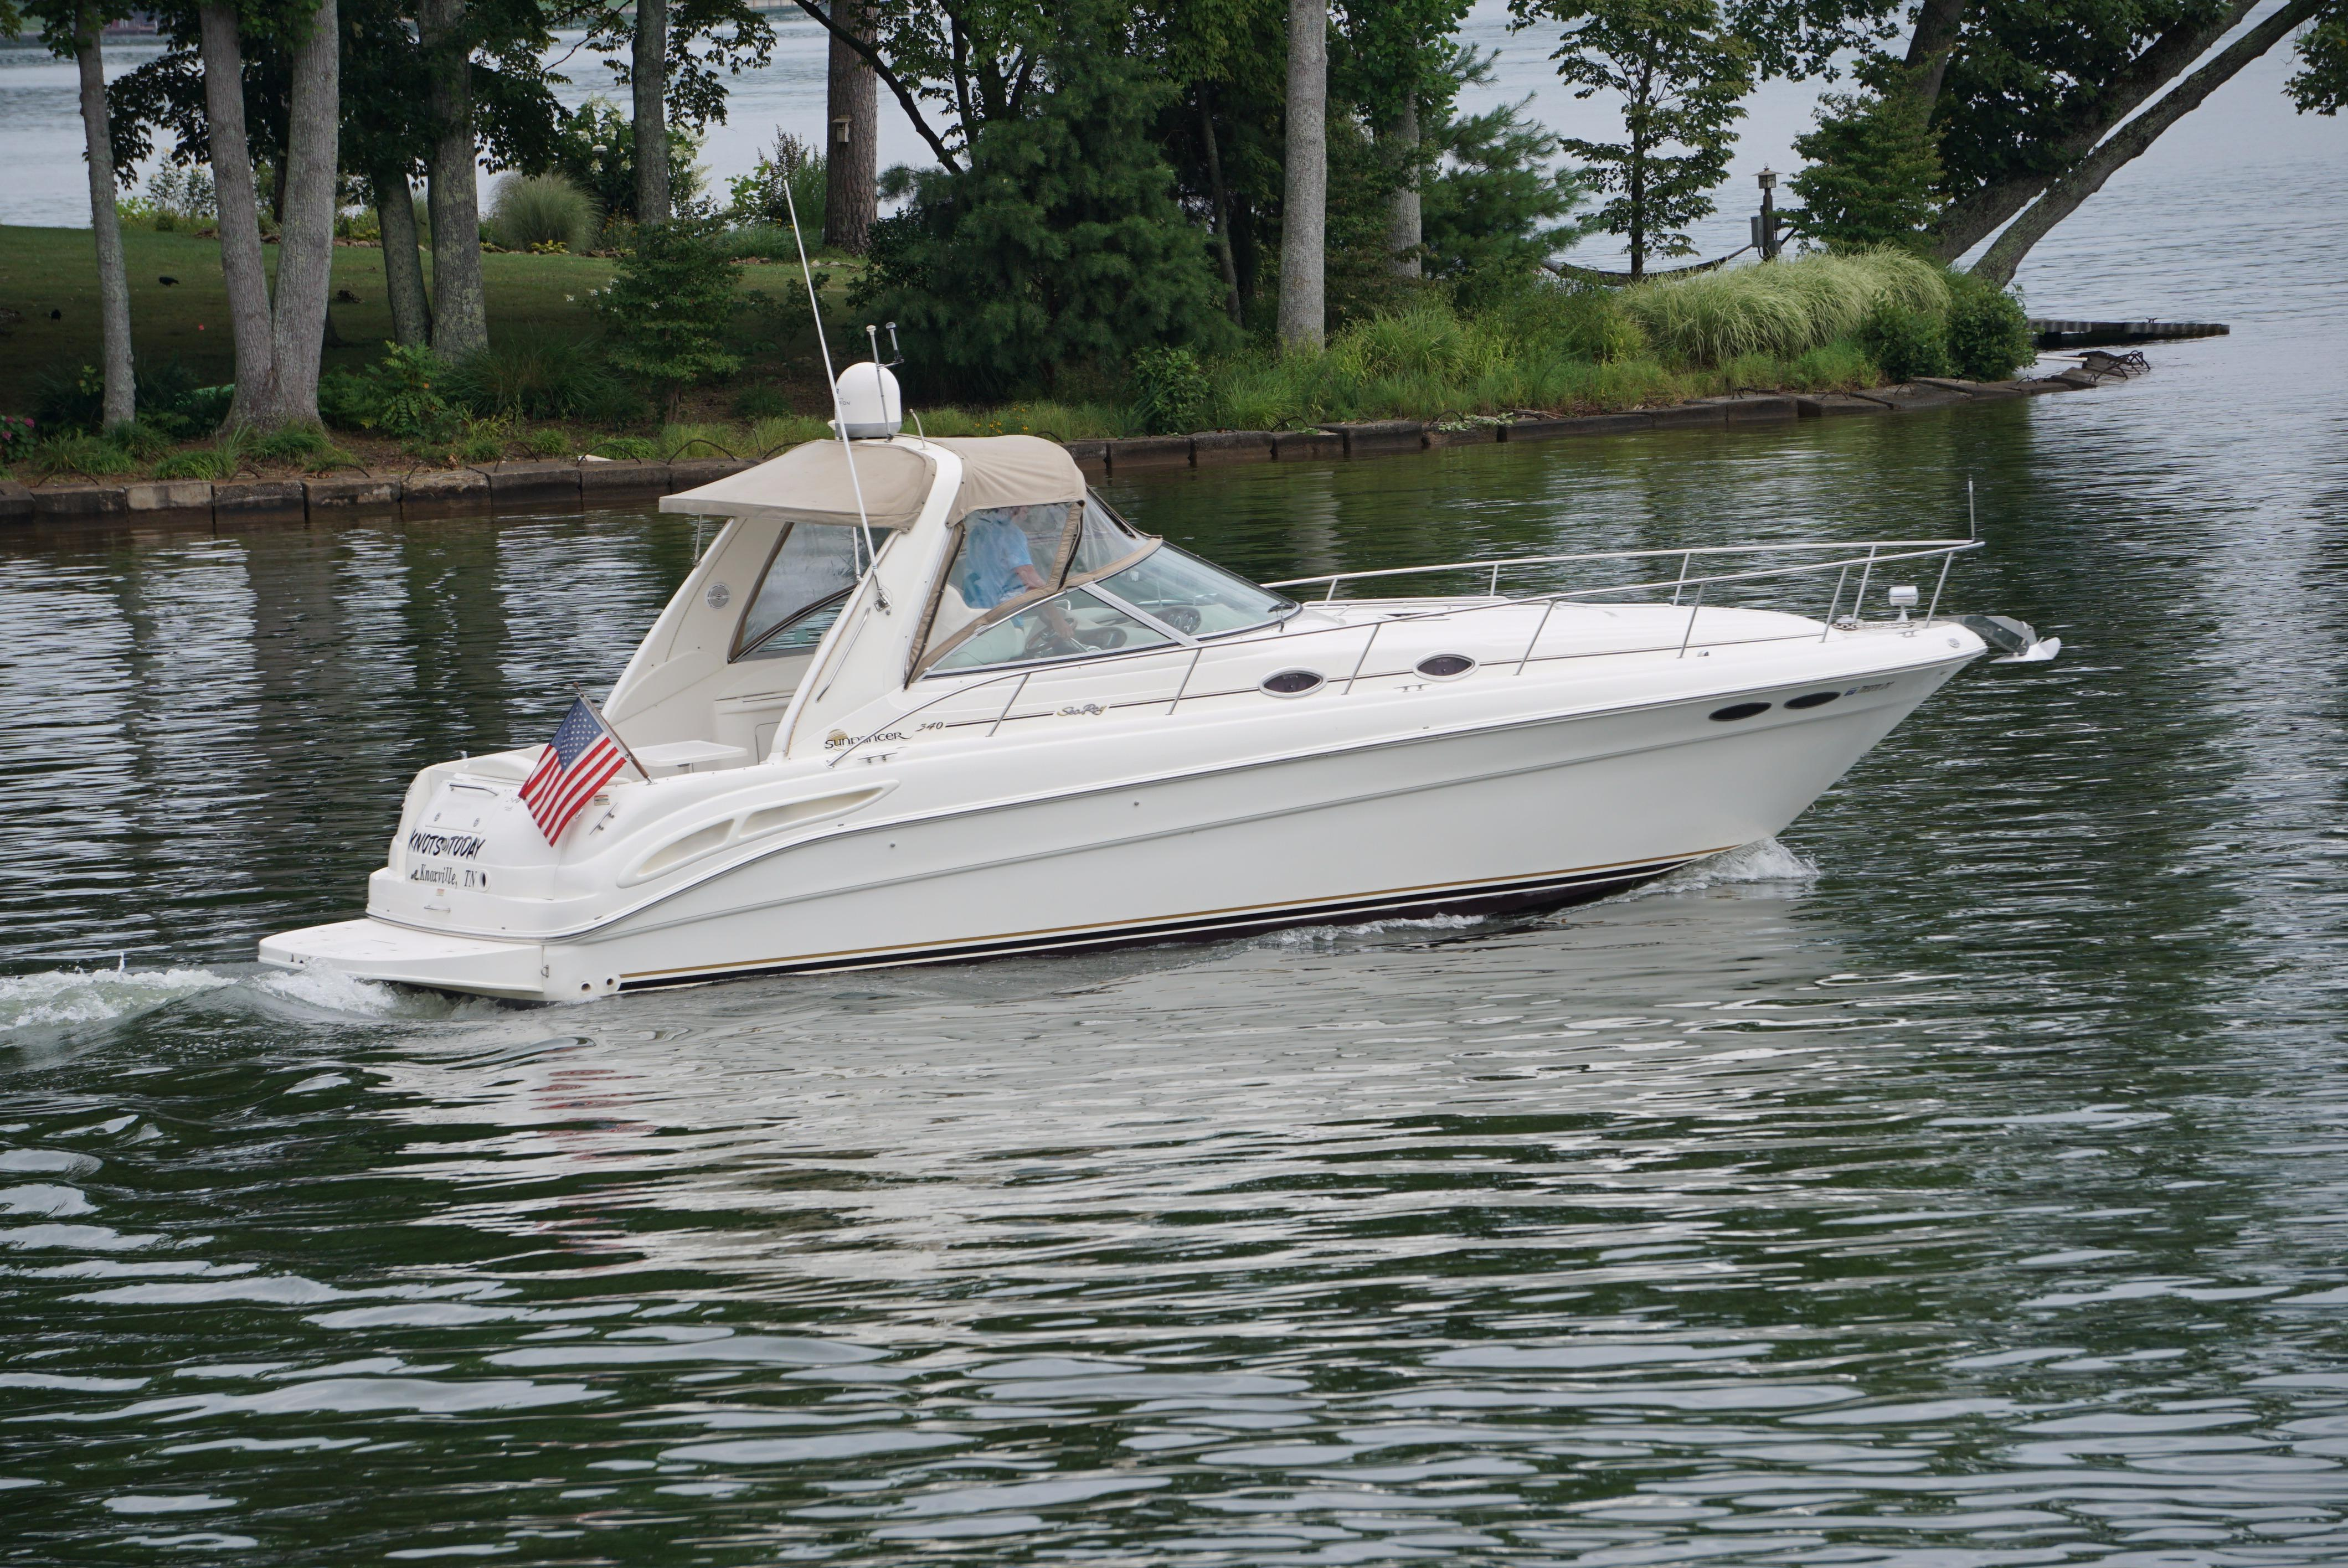 Loudon (TN) United States  city photo : 2000 Sea Ray 340 Sundancer Power Boat For Sale www.yachtworld.com